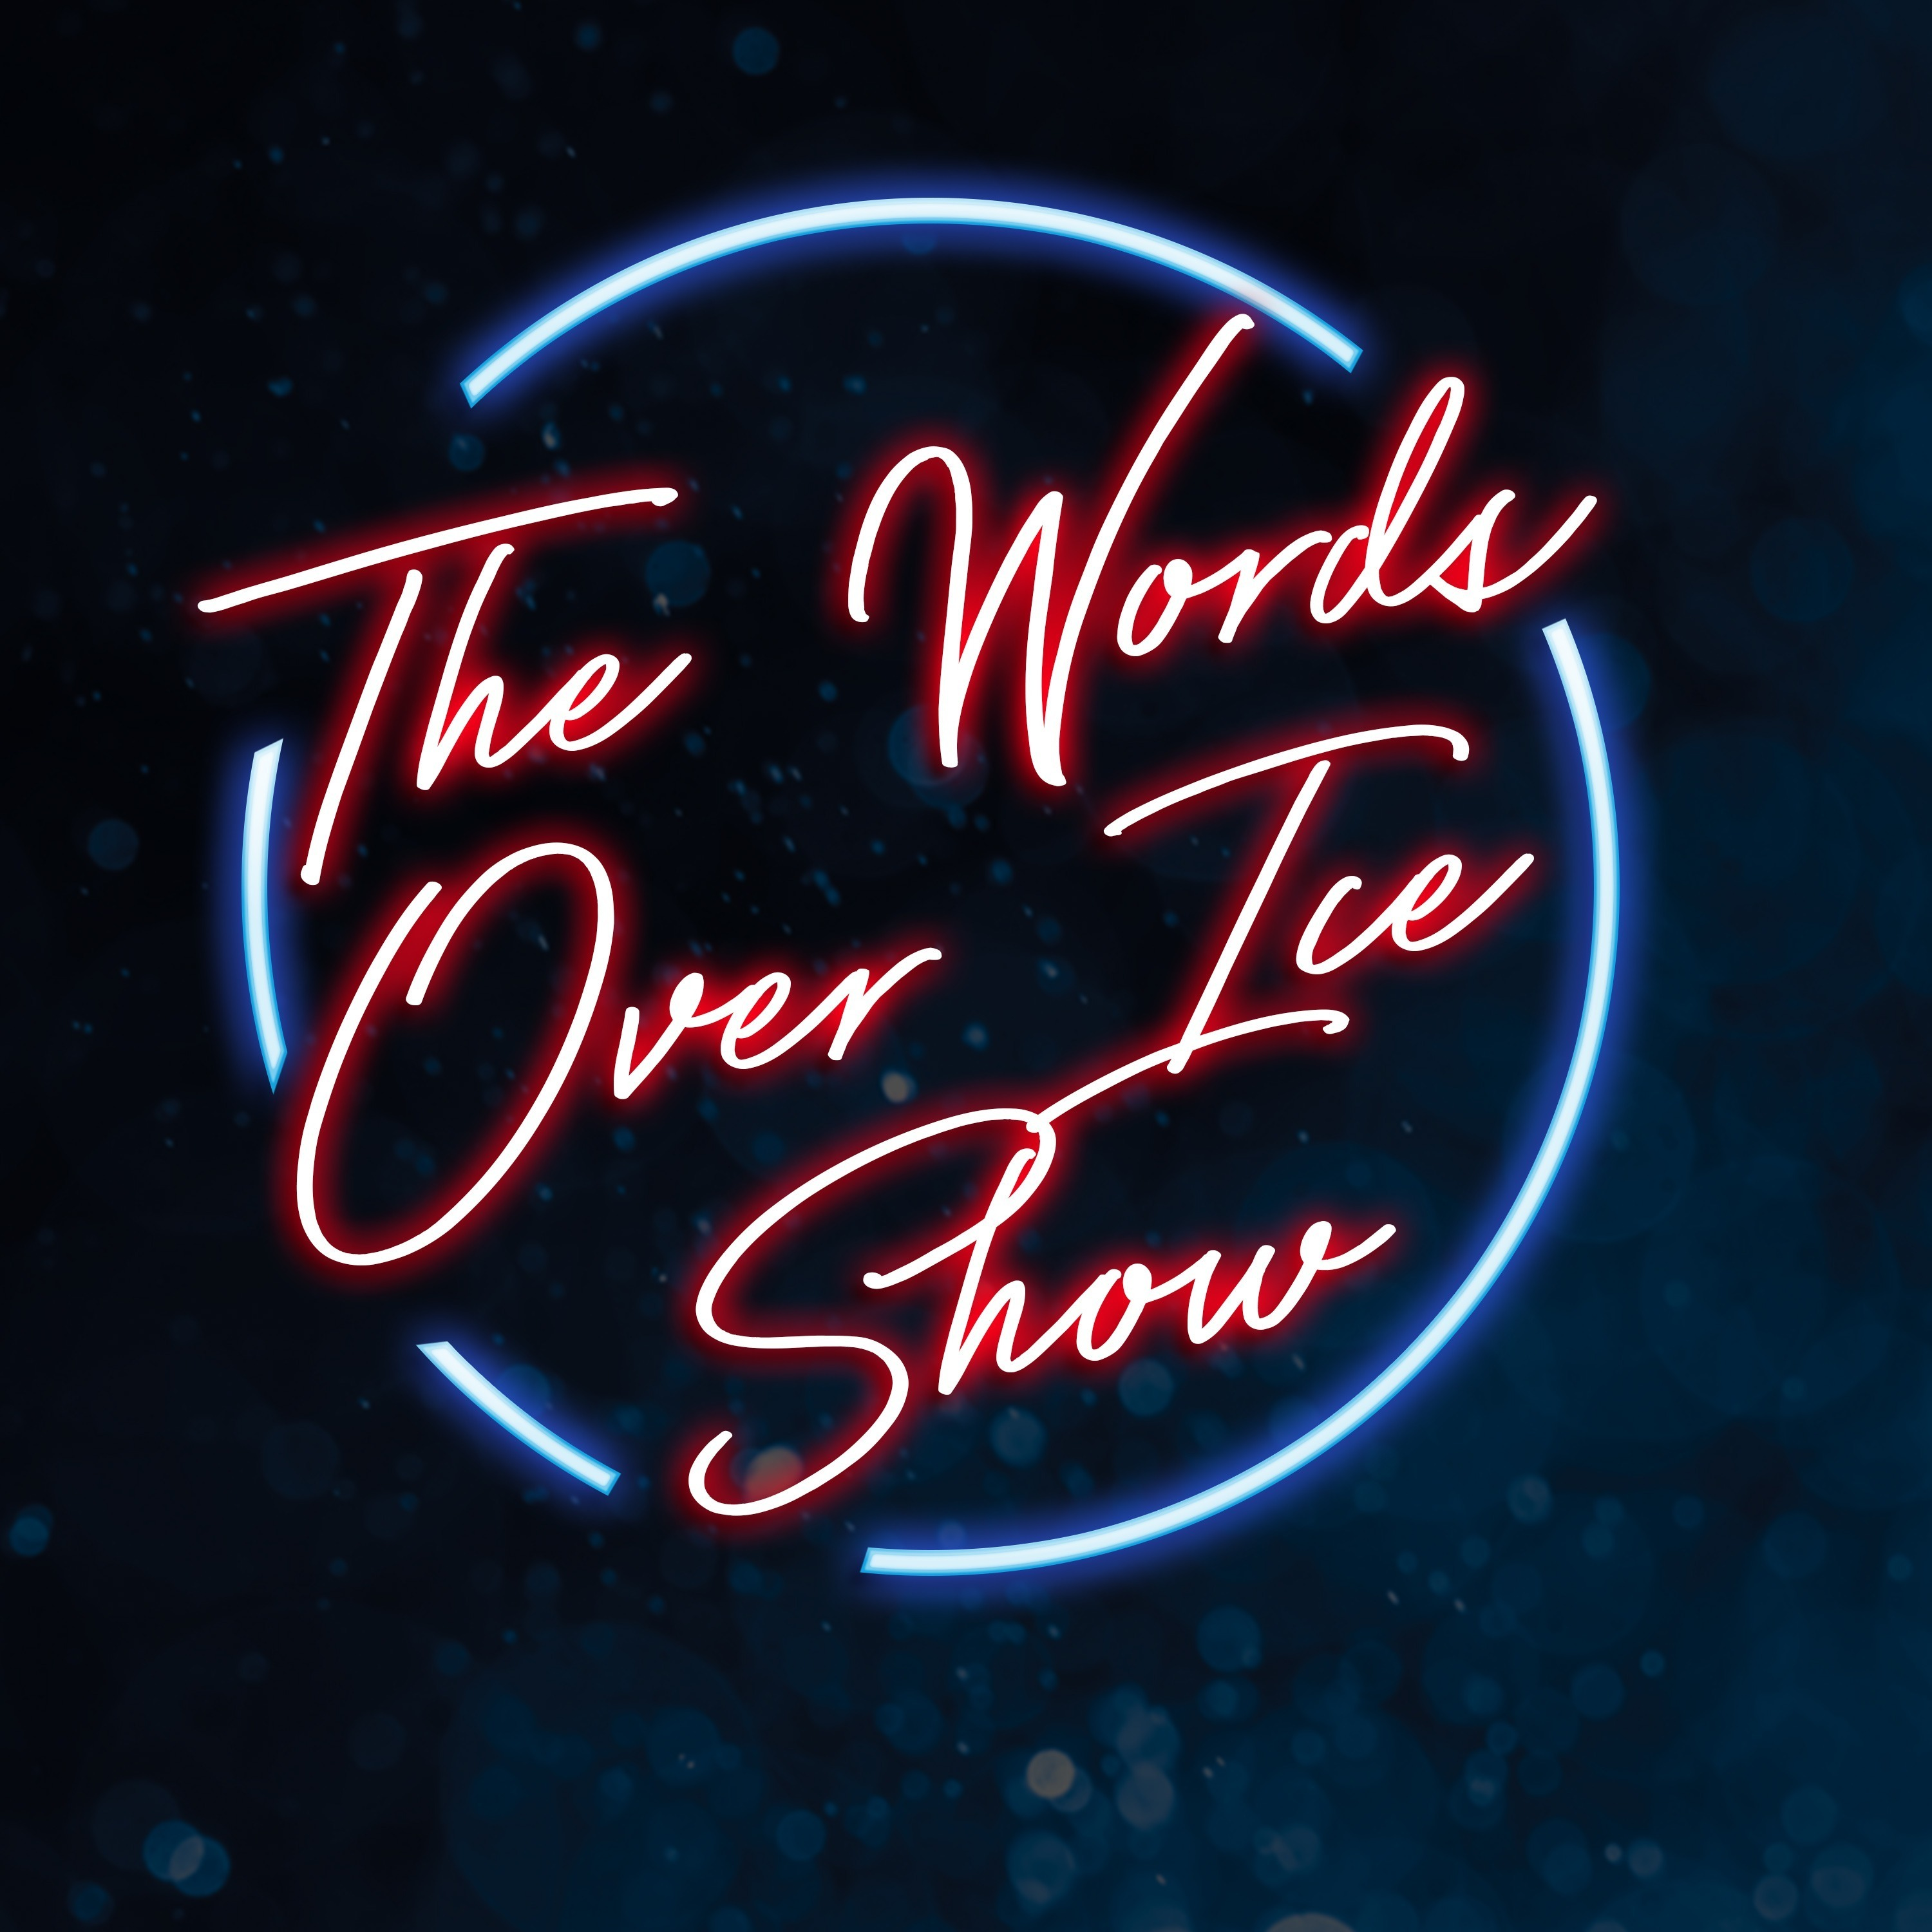 The Words Over Ice Show